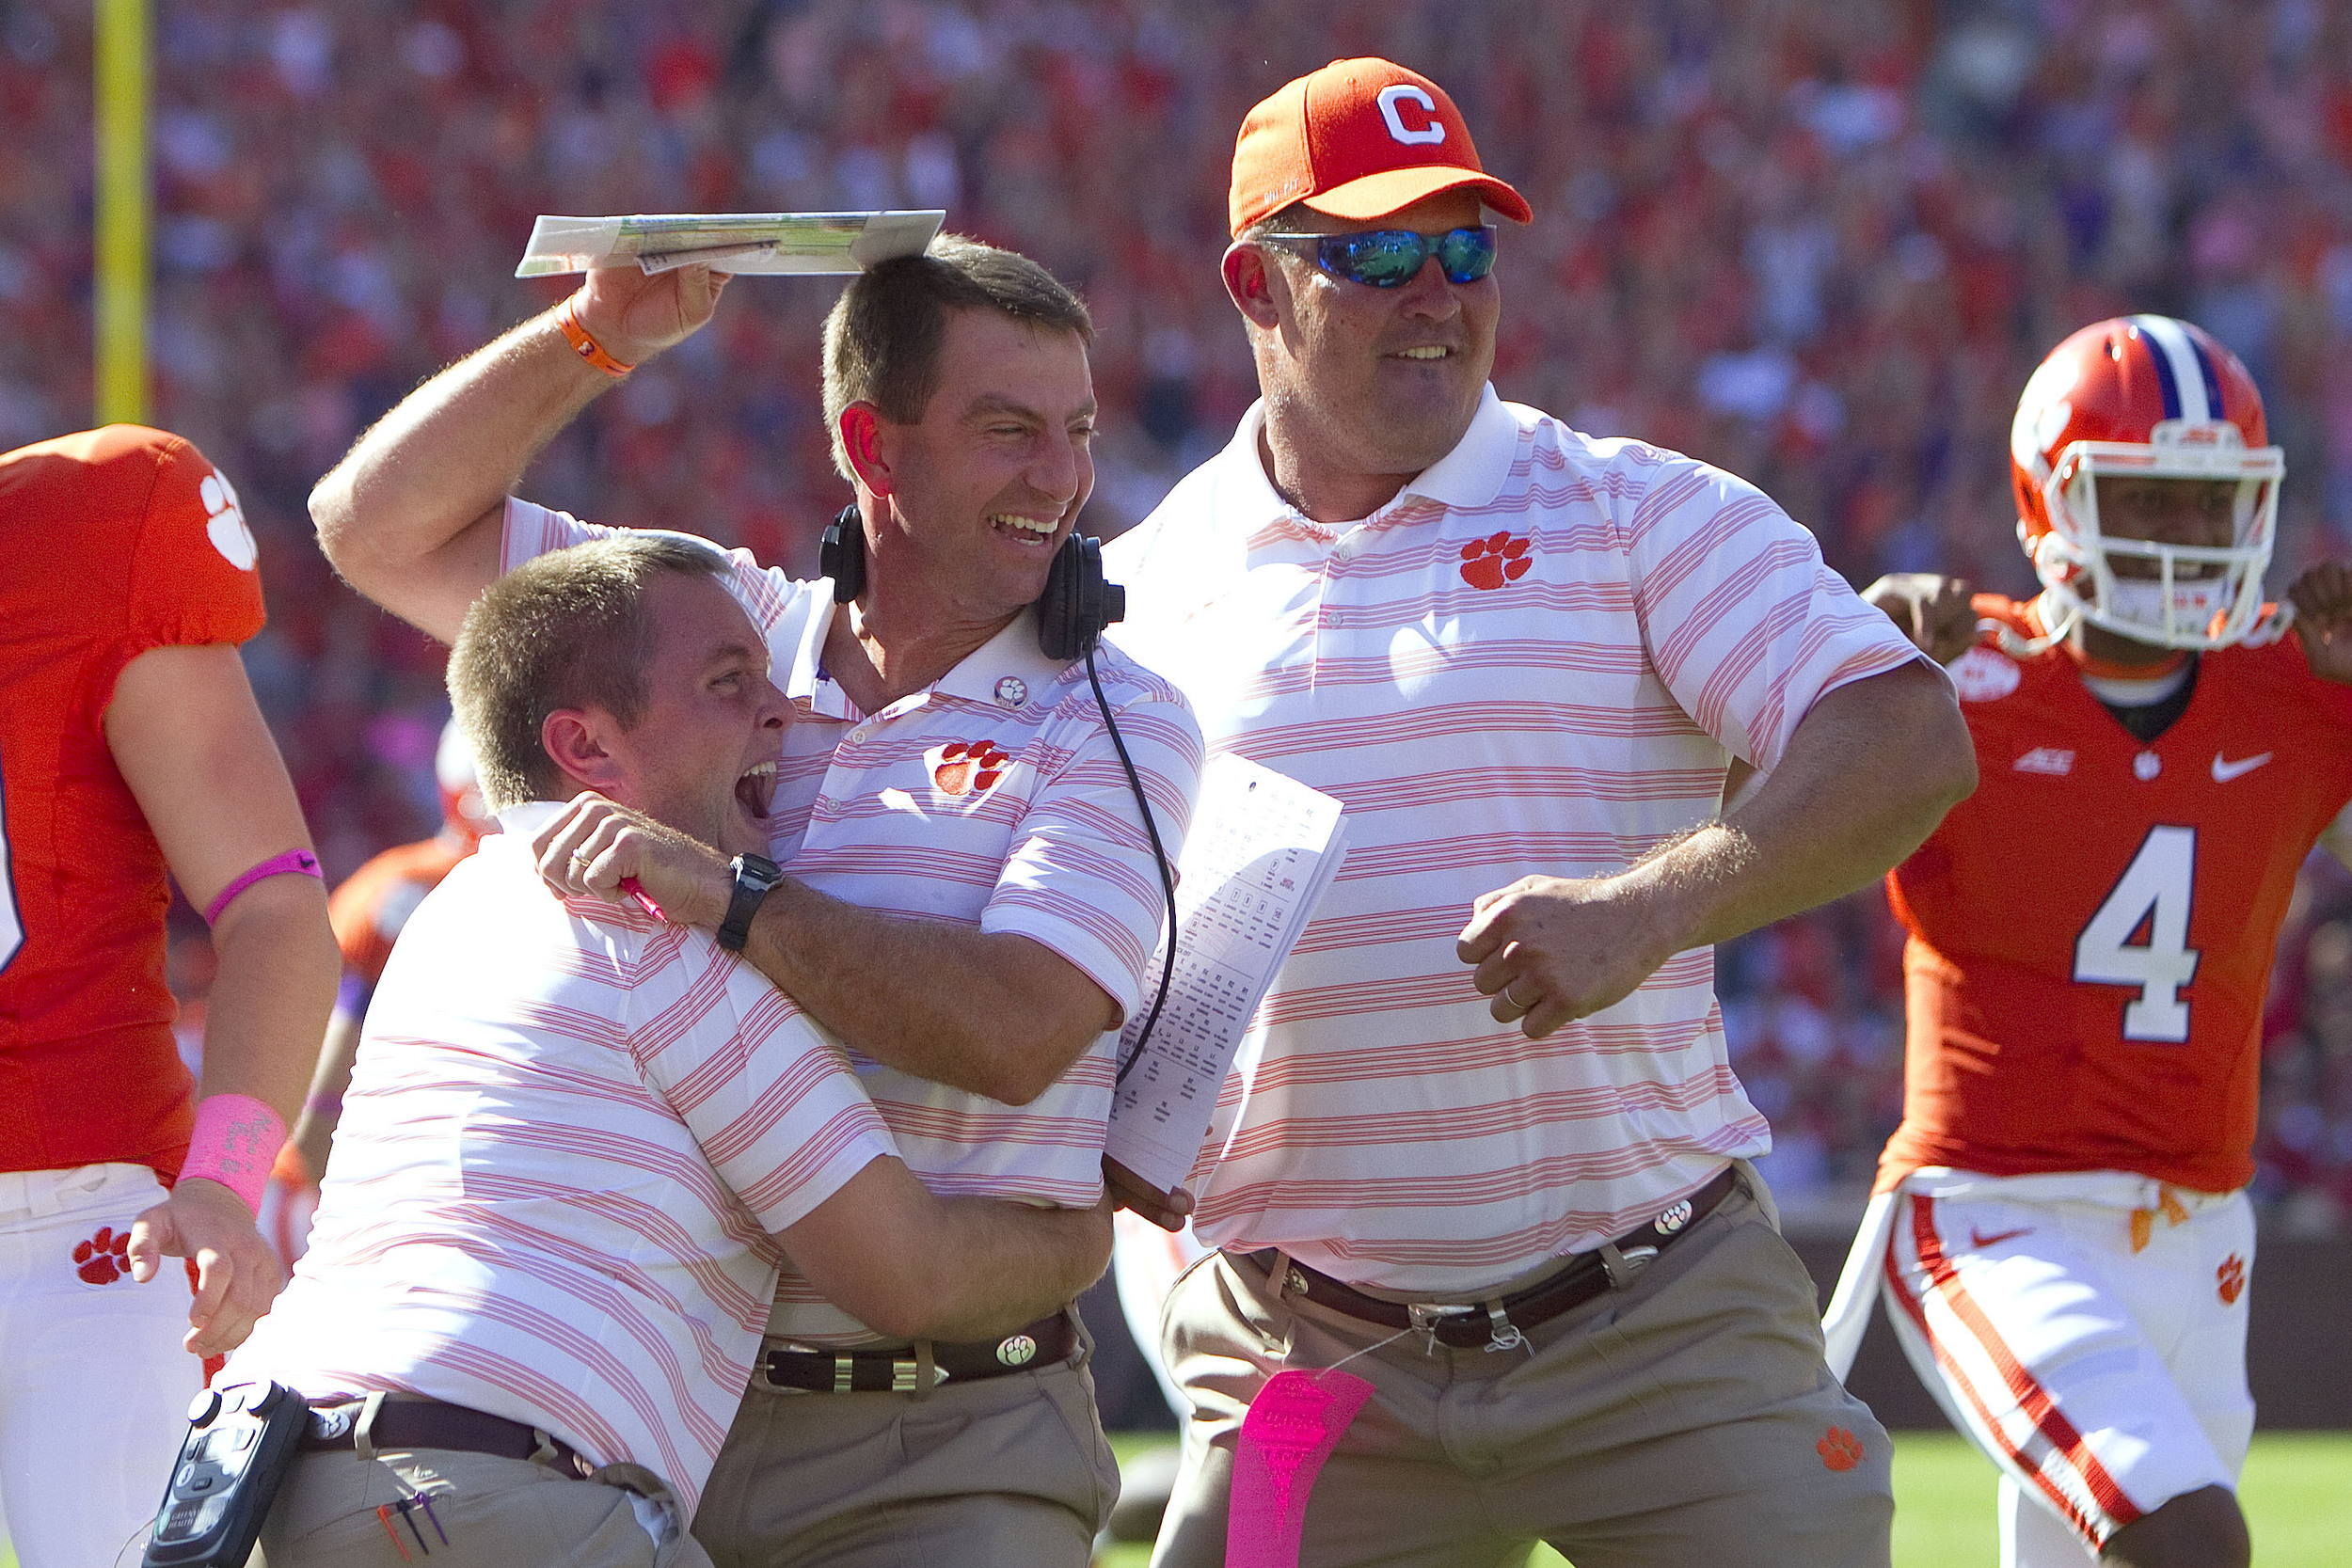 Has there ever been anyone more excited to hug Dabo Swinney? The answer is no. Even Dabo doesn't know how to react!